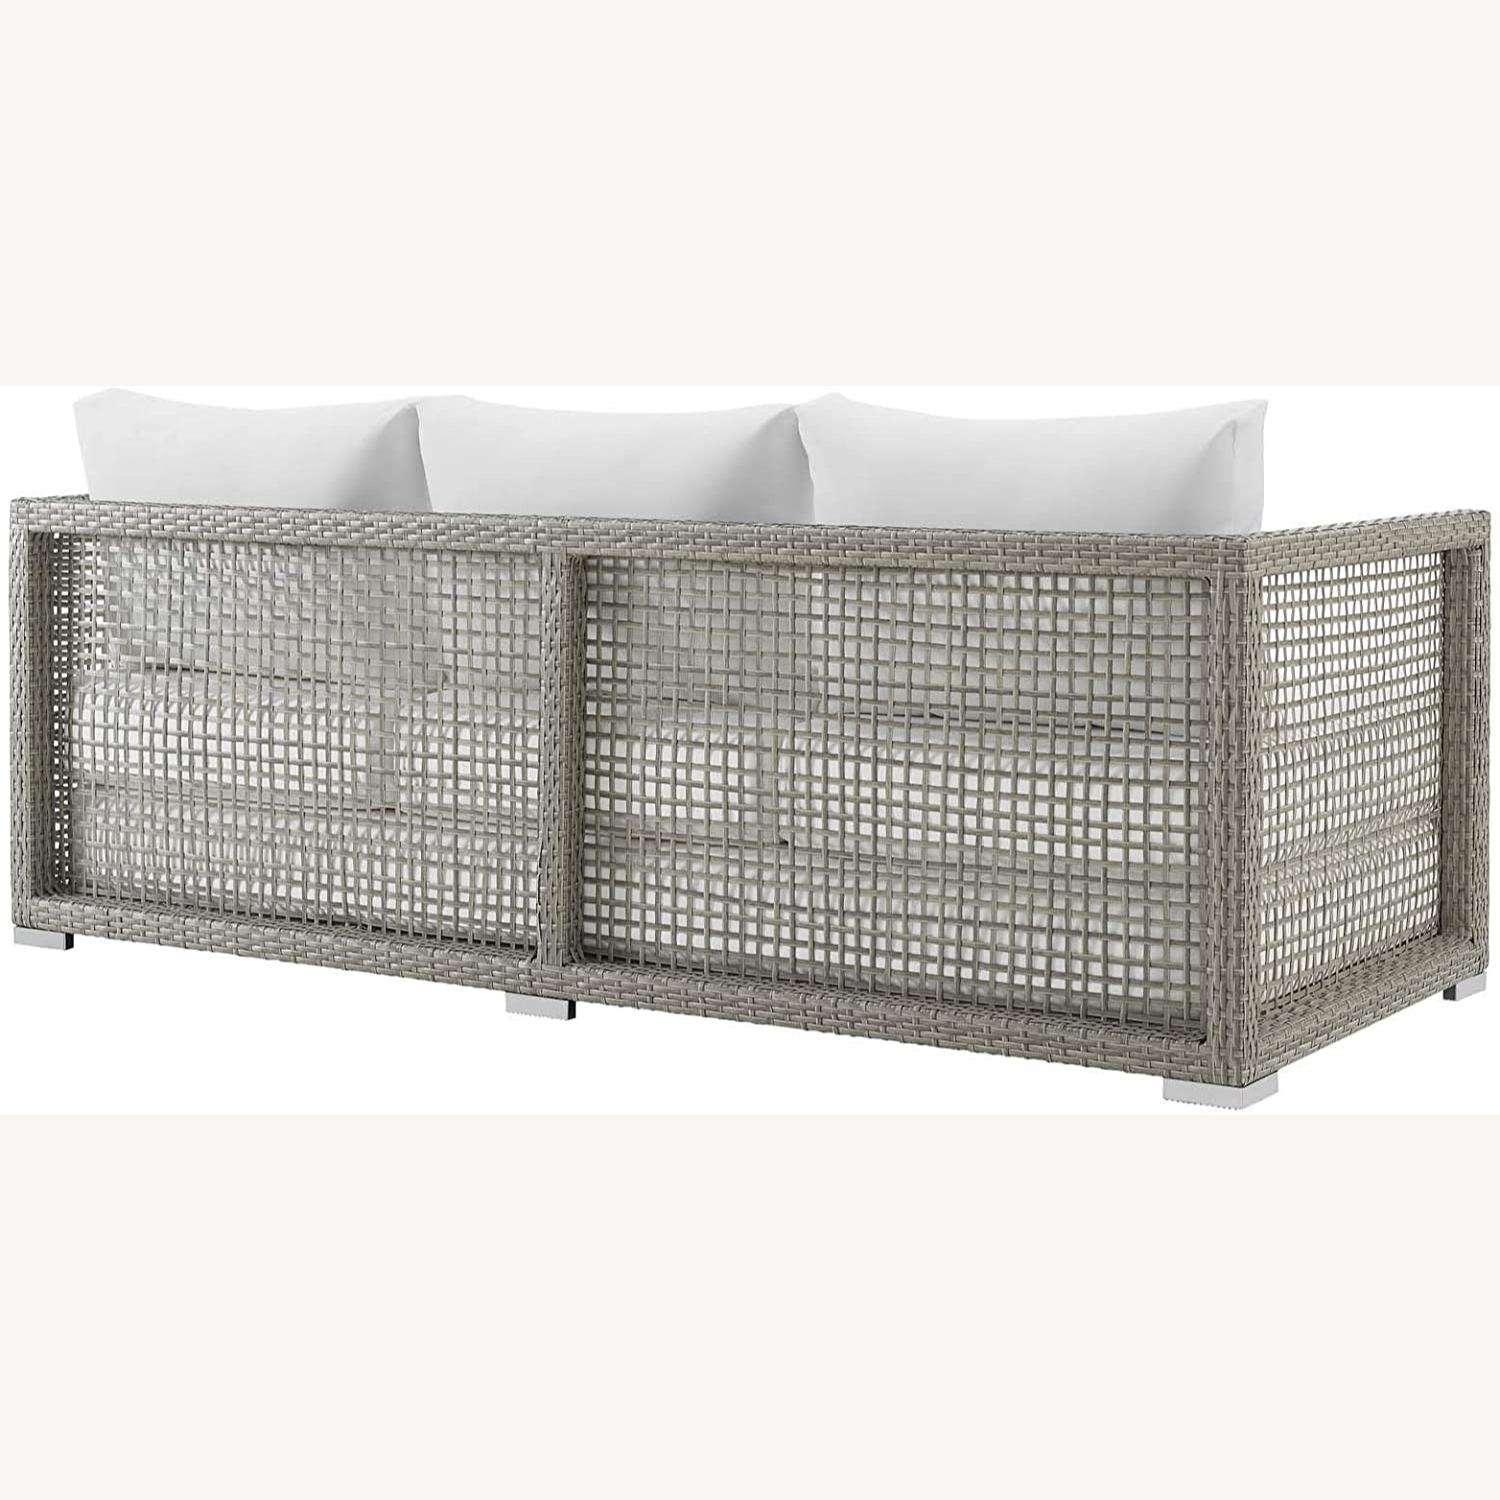 Outdoor Sofa In Gray Rattan Weave Finish - image-2